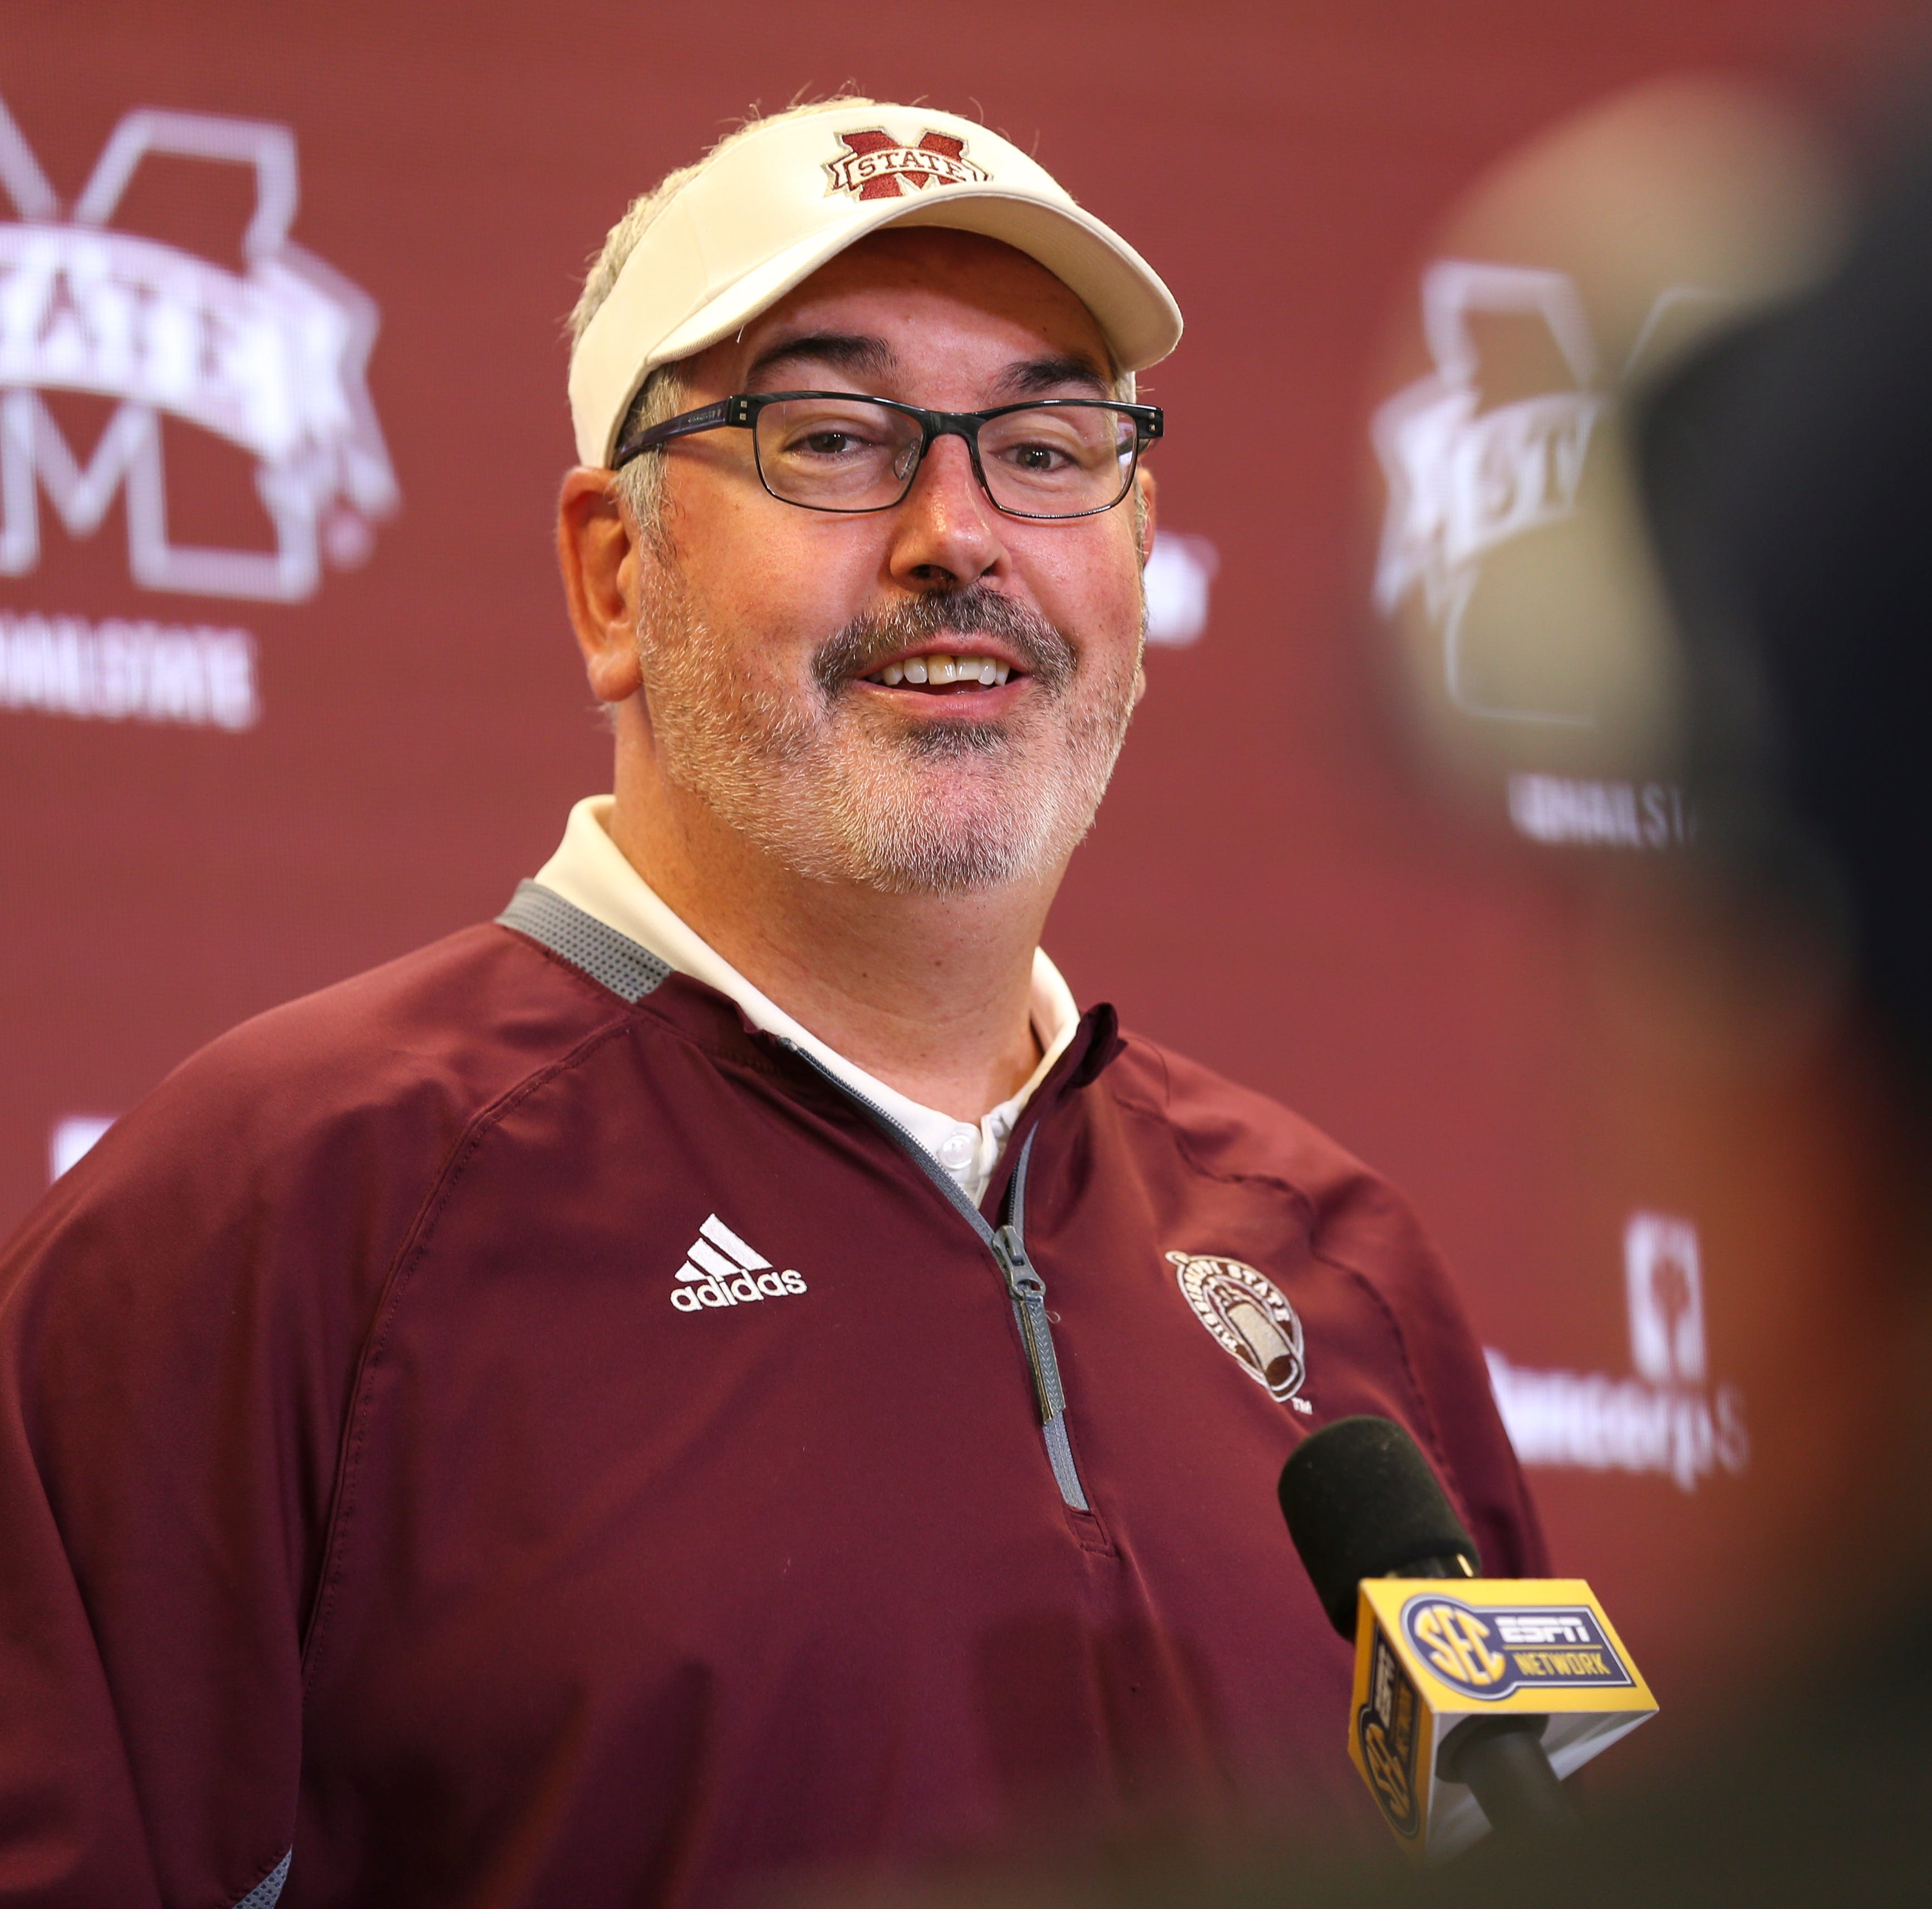 Mississippi State's Media Day defined by buoyant Bulldogs